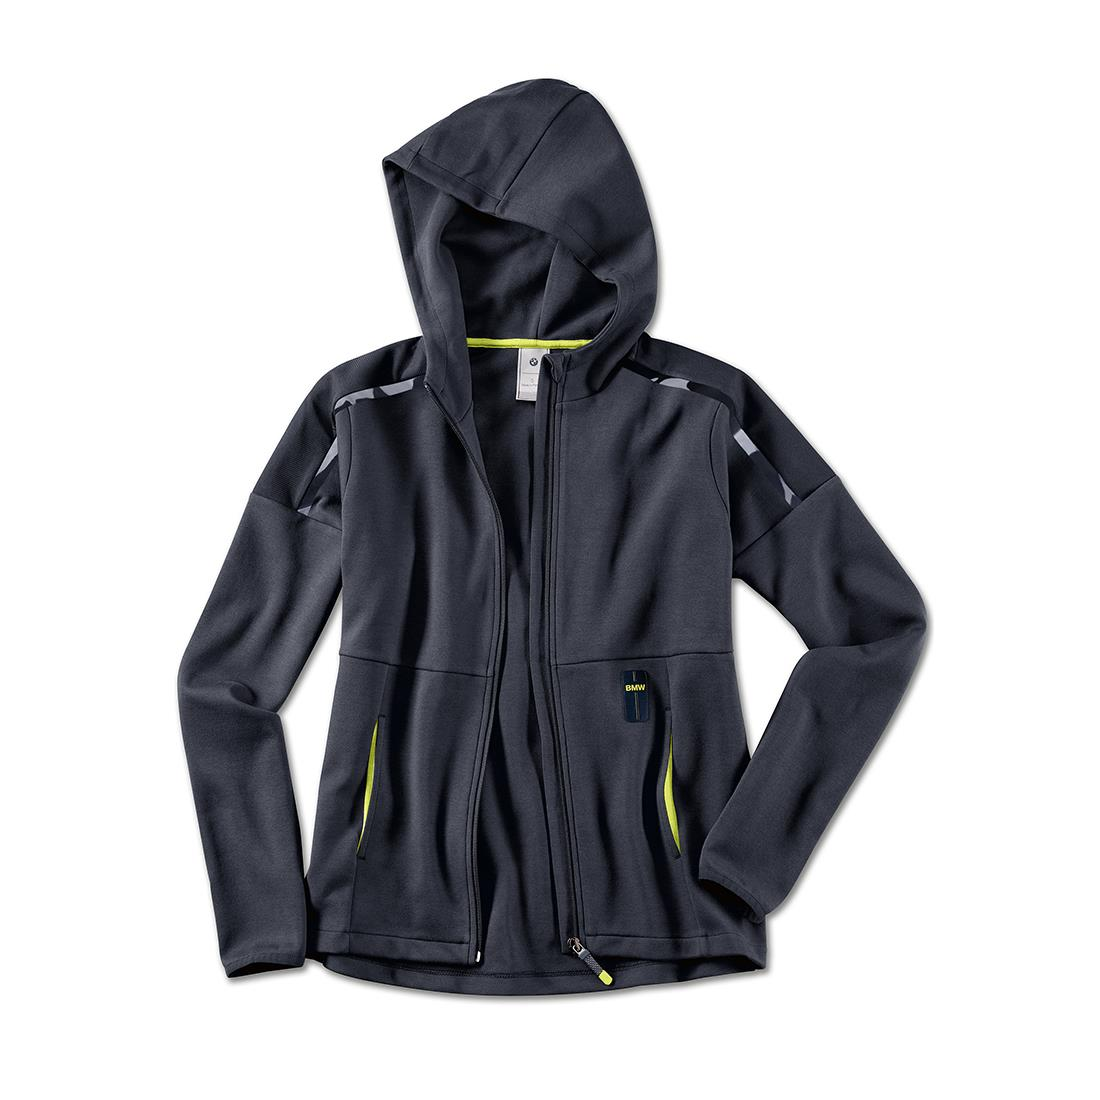 BMW Sweatjacket Women